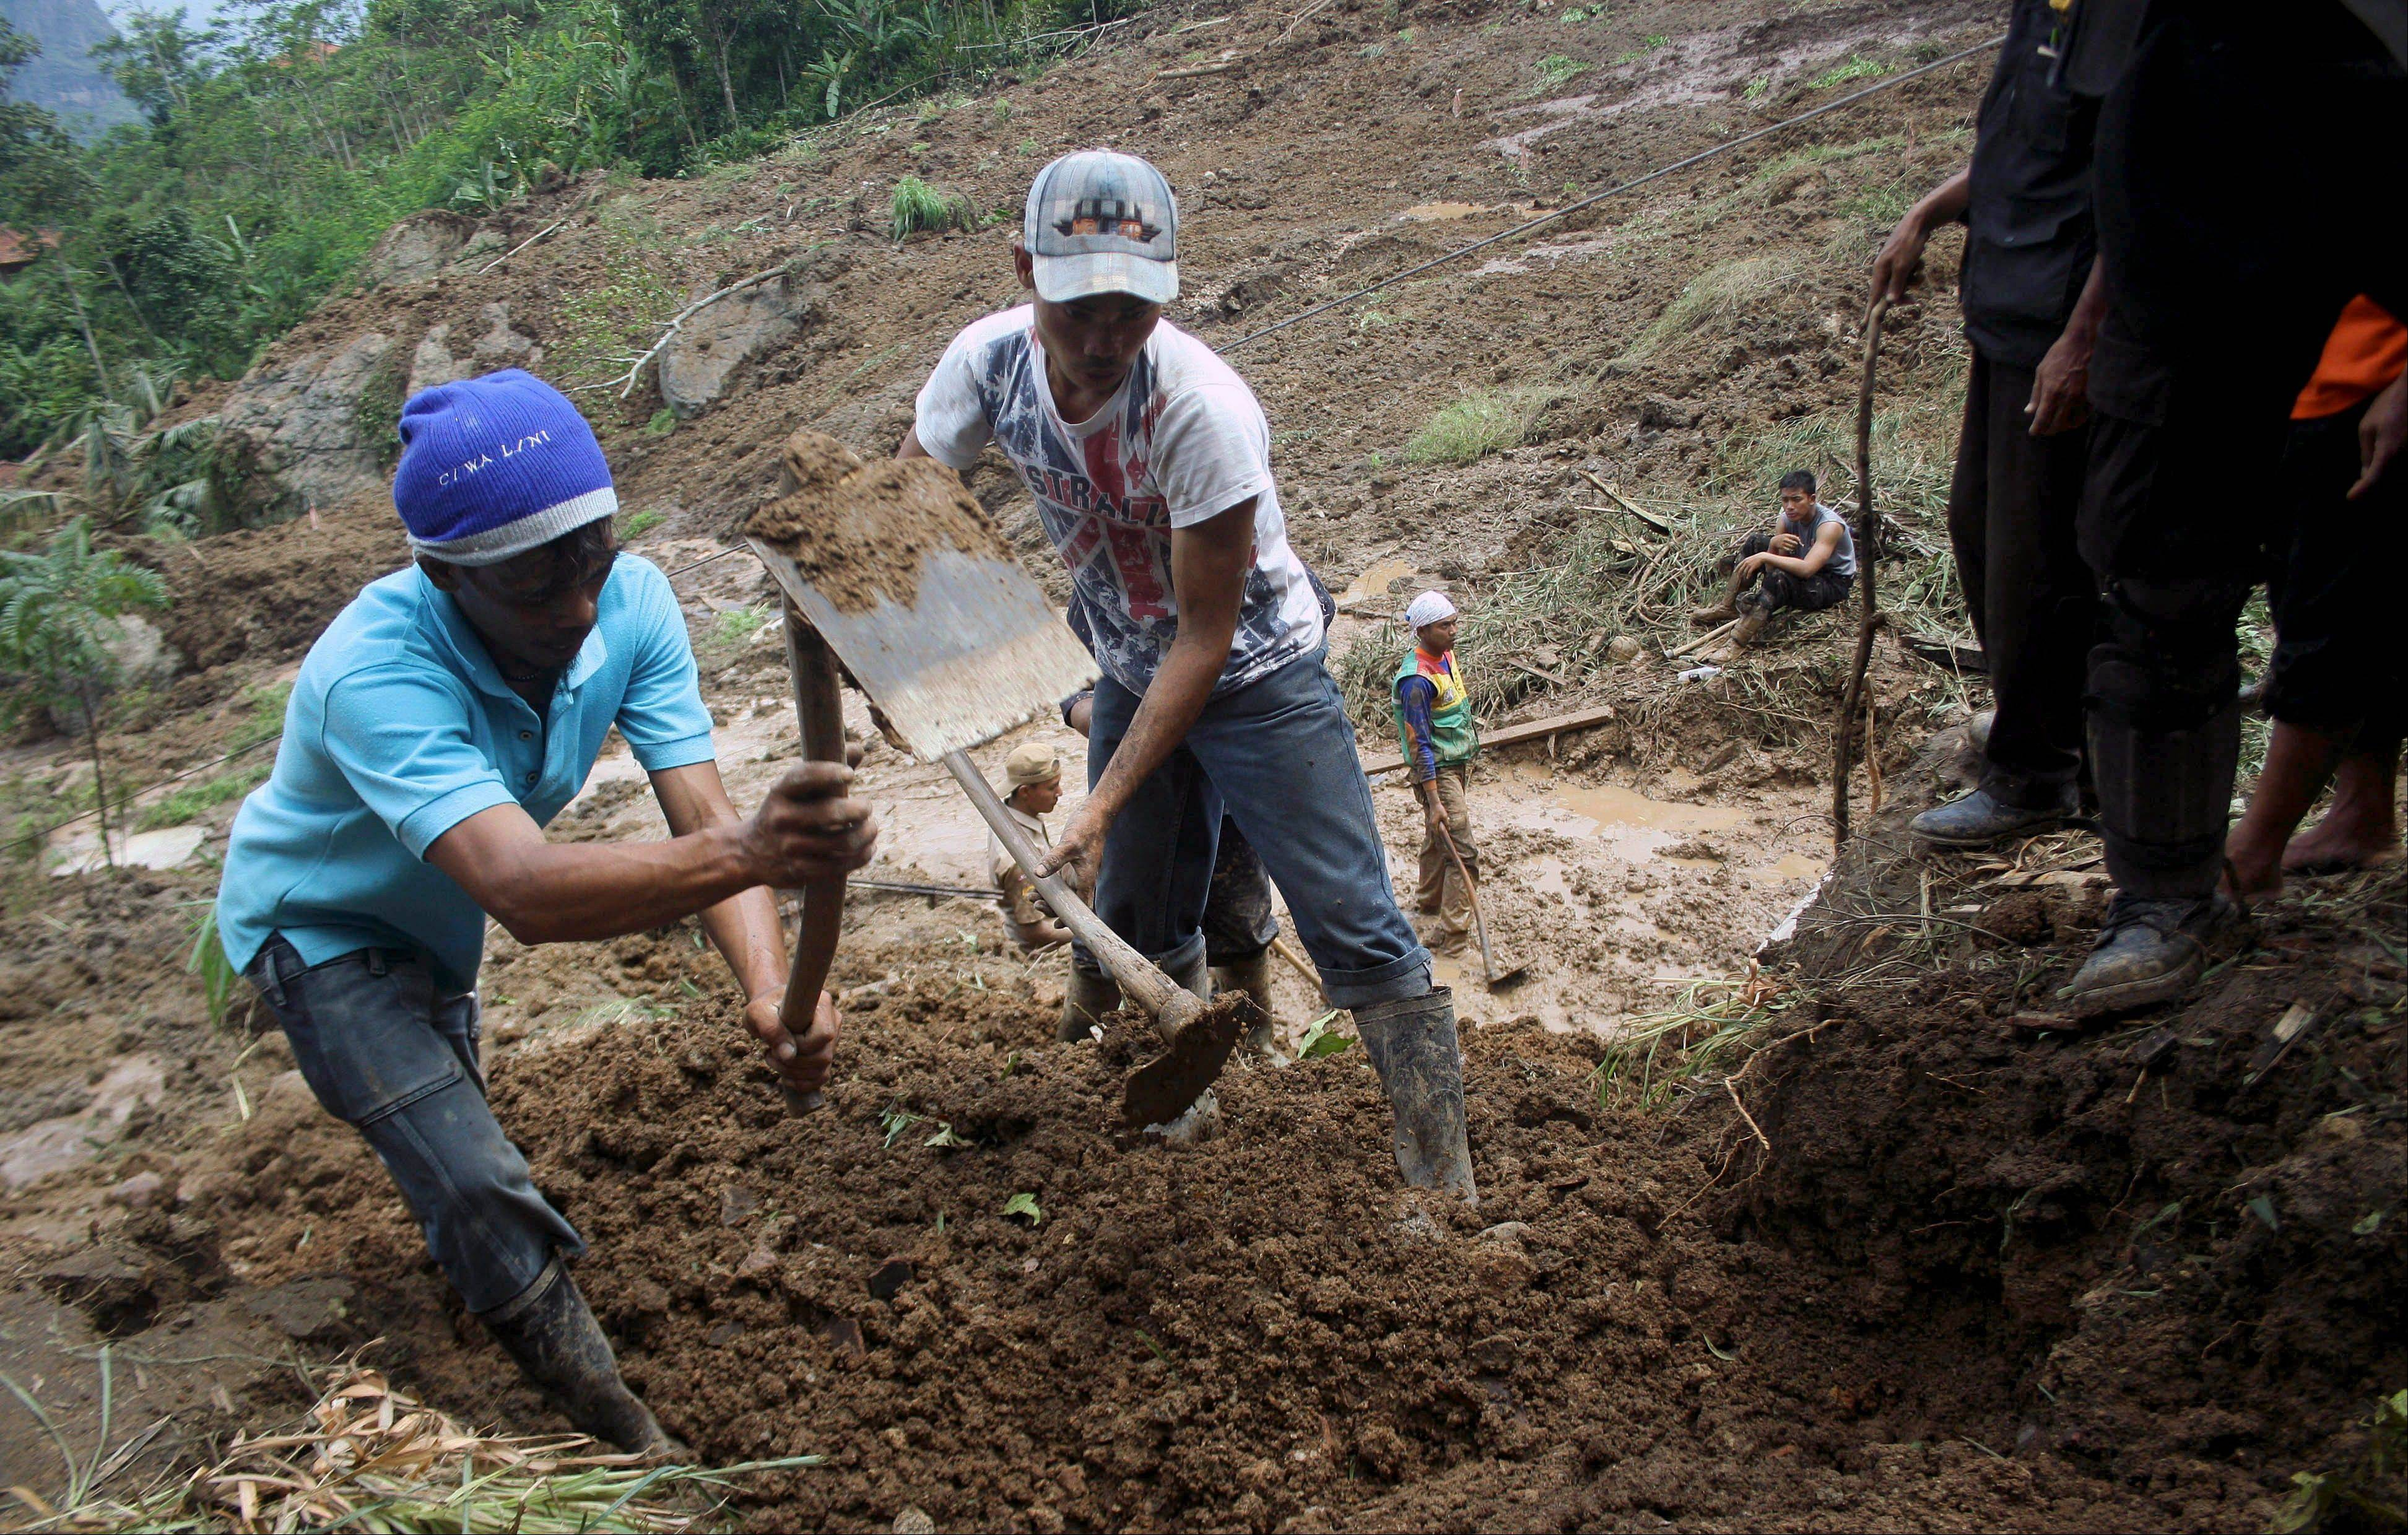 Villagers use hoes as they search for victims of a landslide that hit a village in Cililin, West Java, Indonesia, Monday.